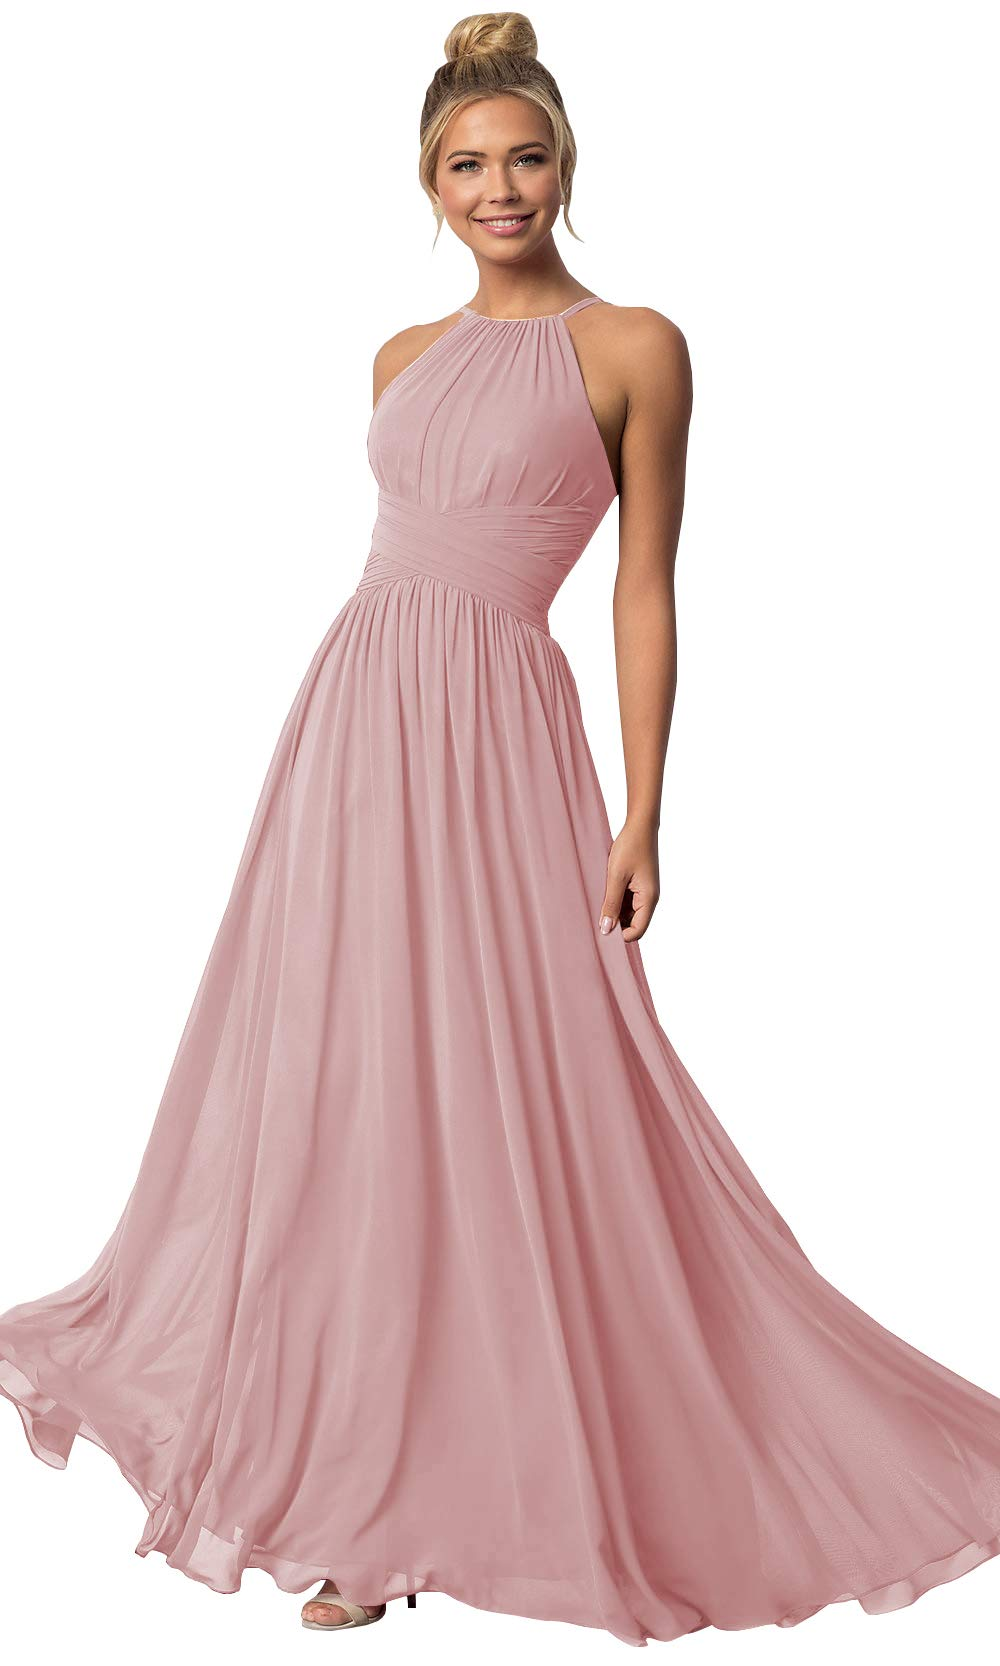 4c7b876d4838 Women's Halter Chiffon Long Bridesmaid Prom Gown A Line Sleeveless Party Prom  Dress Dusty Rose Size 10